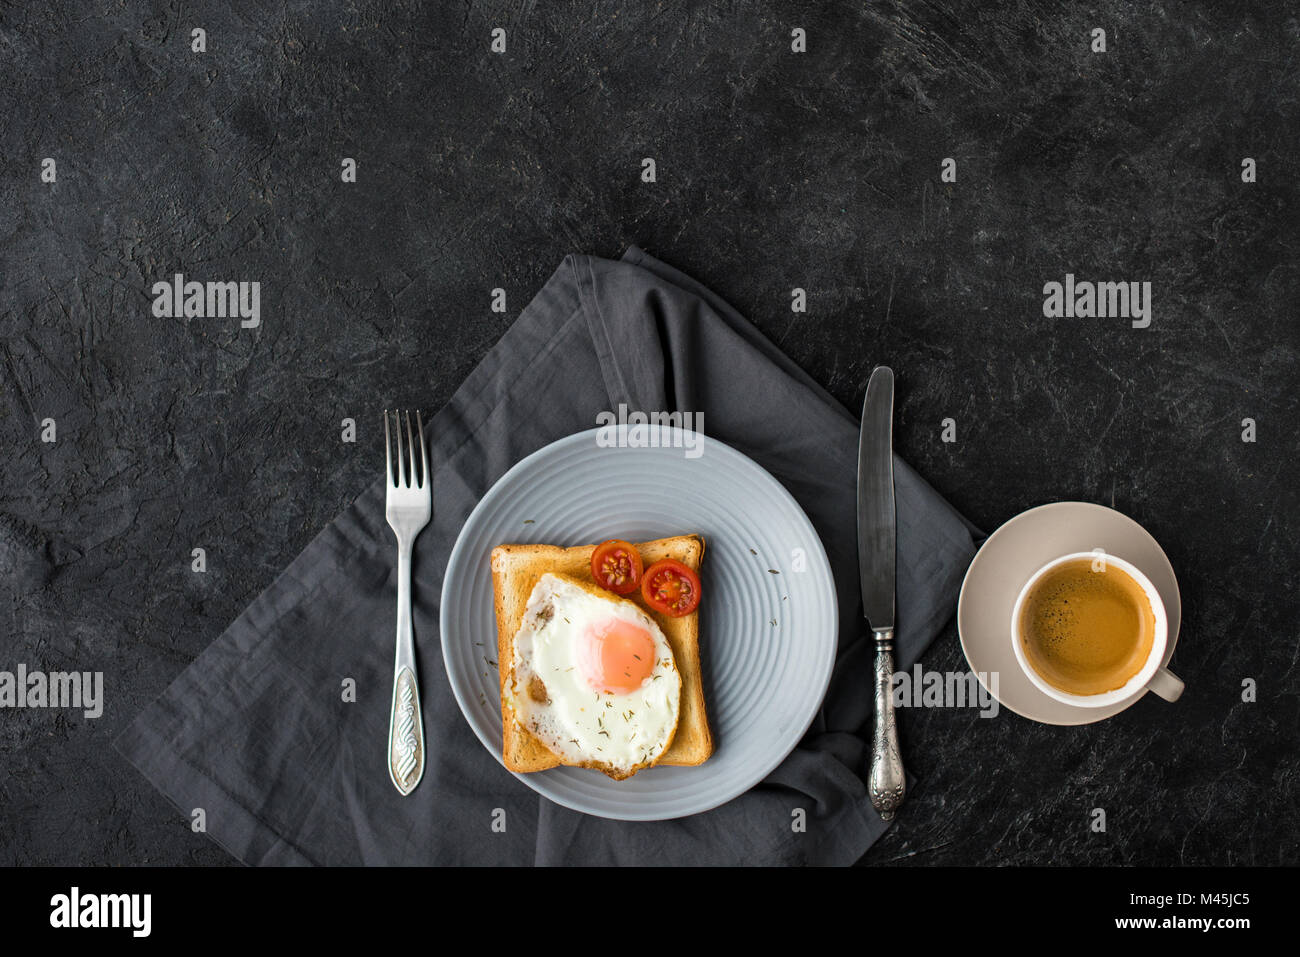 flat lay with cup of coffee and toast with fried egg and cherry tomatoes for breakfast on dark surface - Stock Image